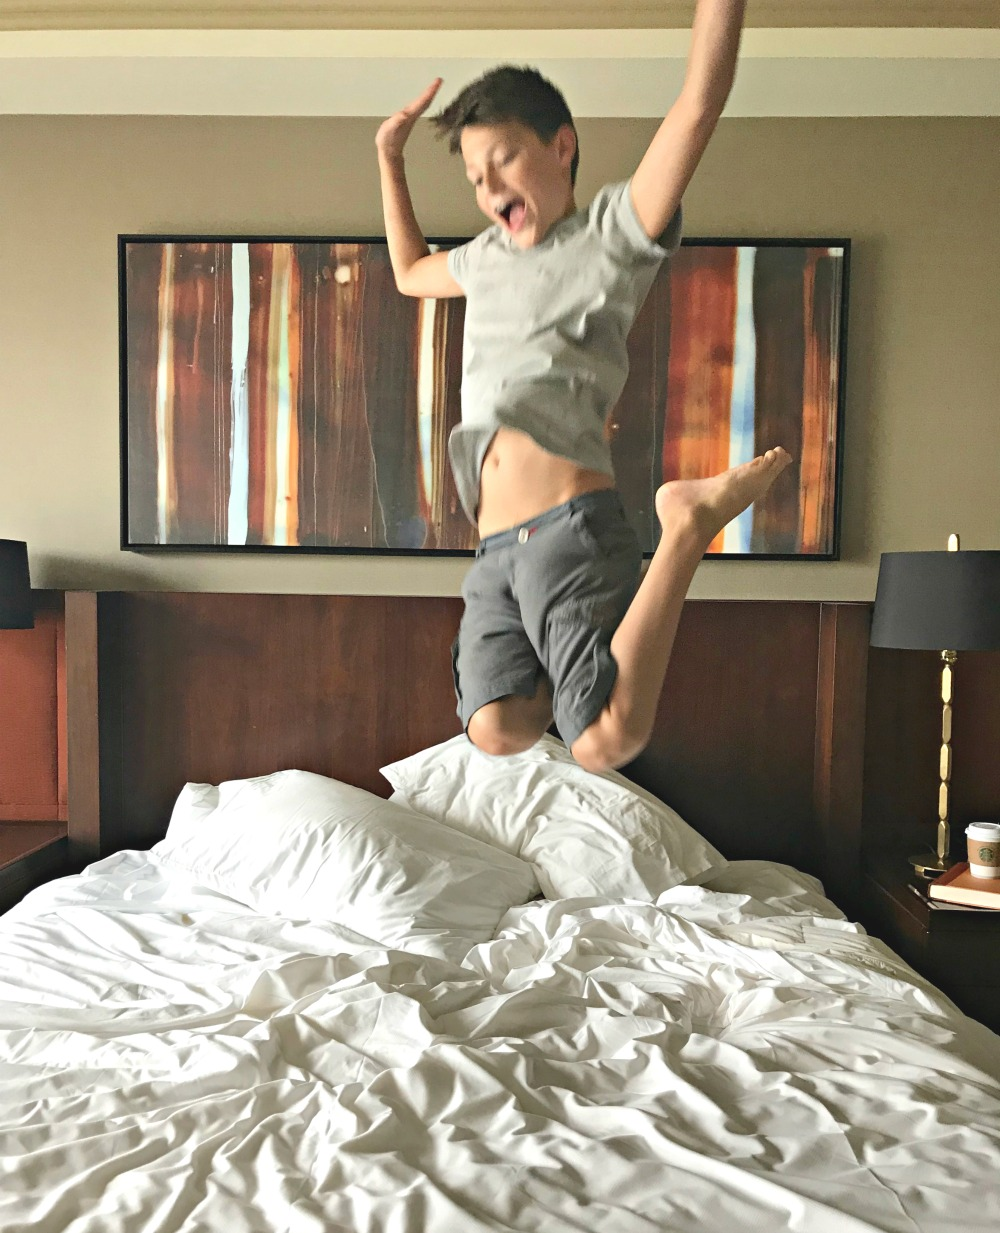 boy jumping on bed at Hyatt Regency hotel